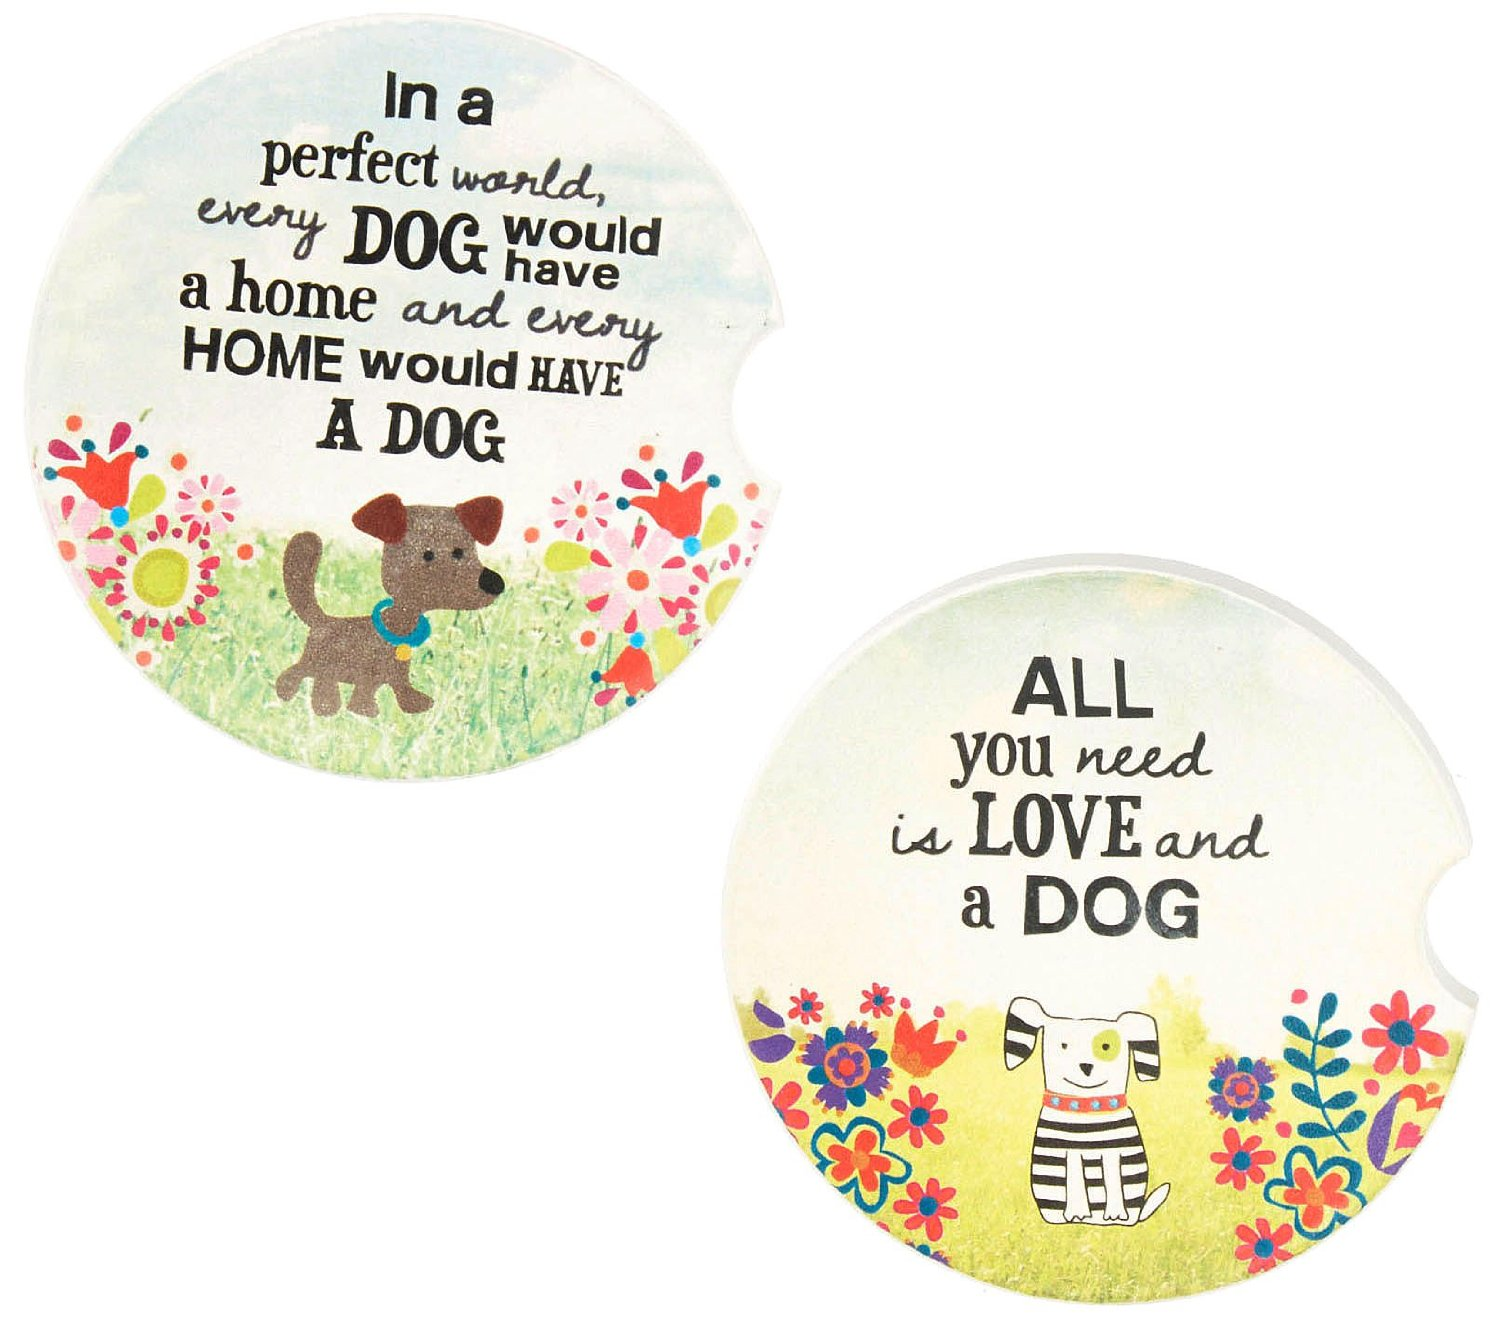 """Natural Life Dog Car Coasters - Set of 2 """"All you need is love and a dog"""" and """"In a perfect world, every DOG would have a home and every HOME would have a DOG"""""""